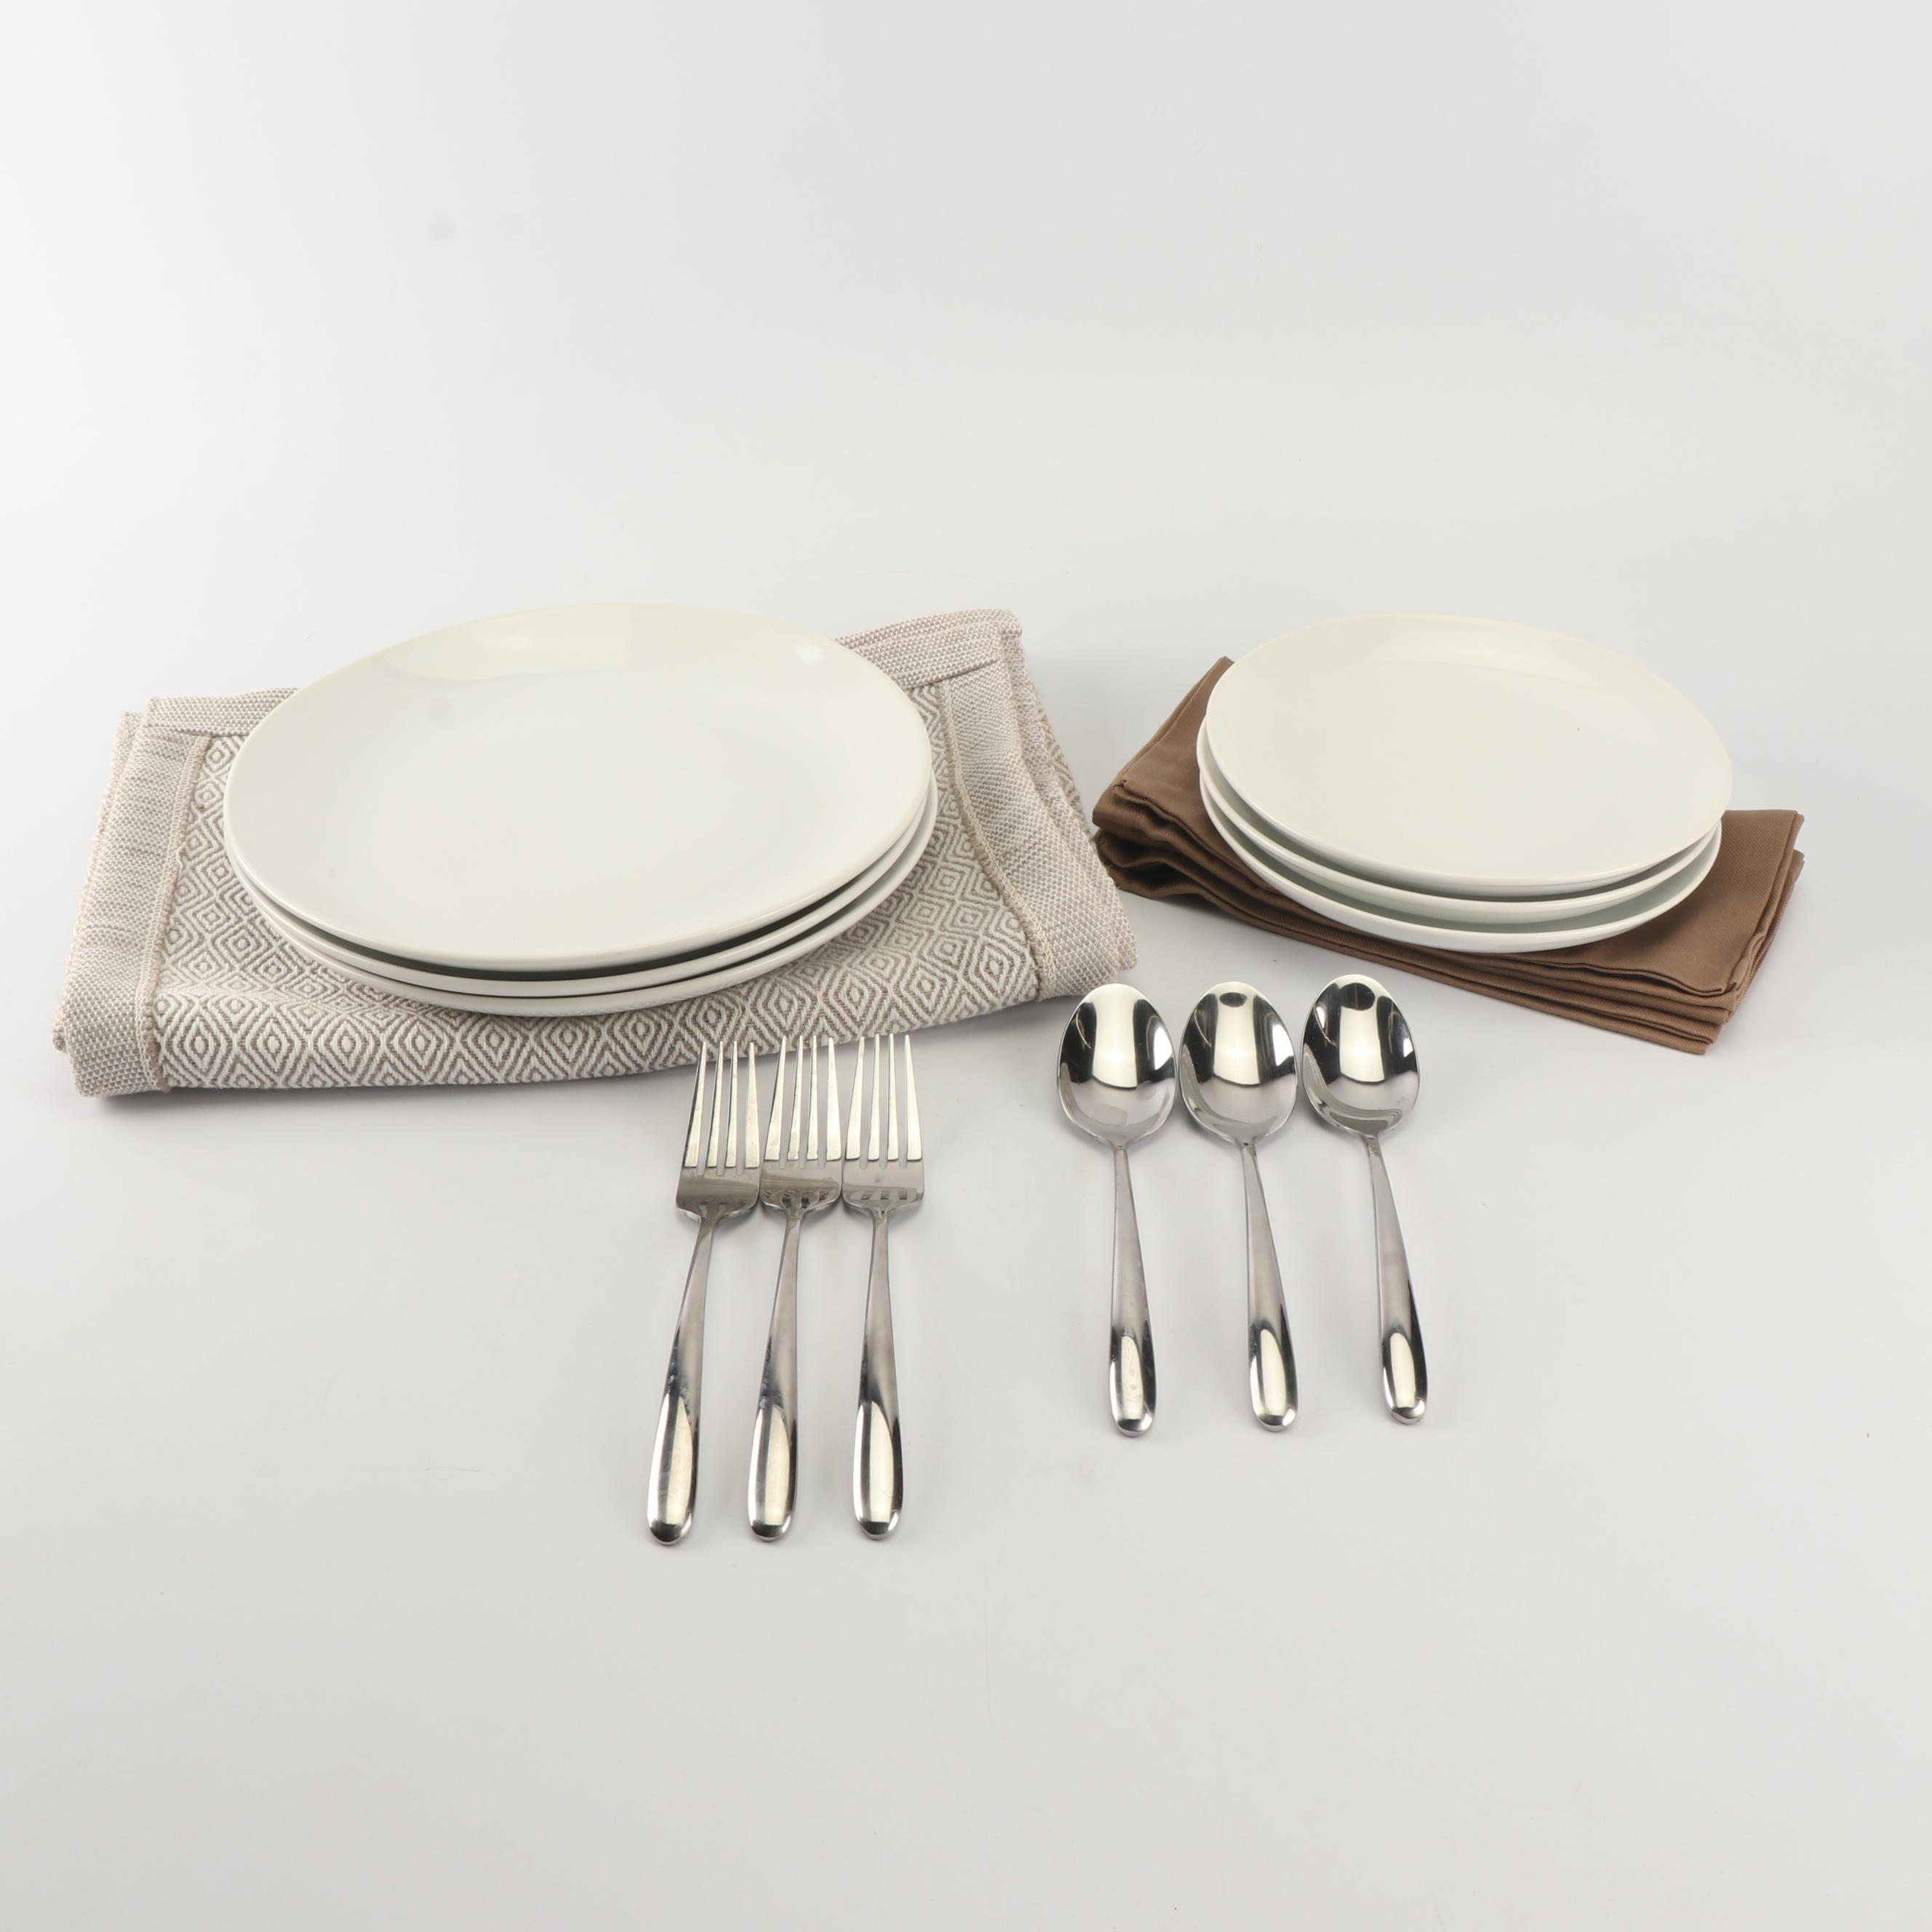 Threshold Dinnerware with Placemats, Napkins and Flatware